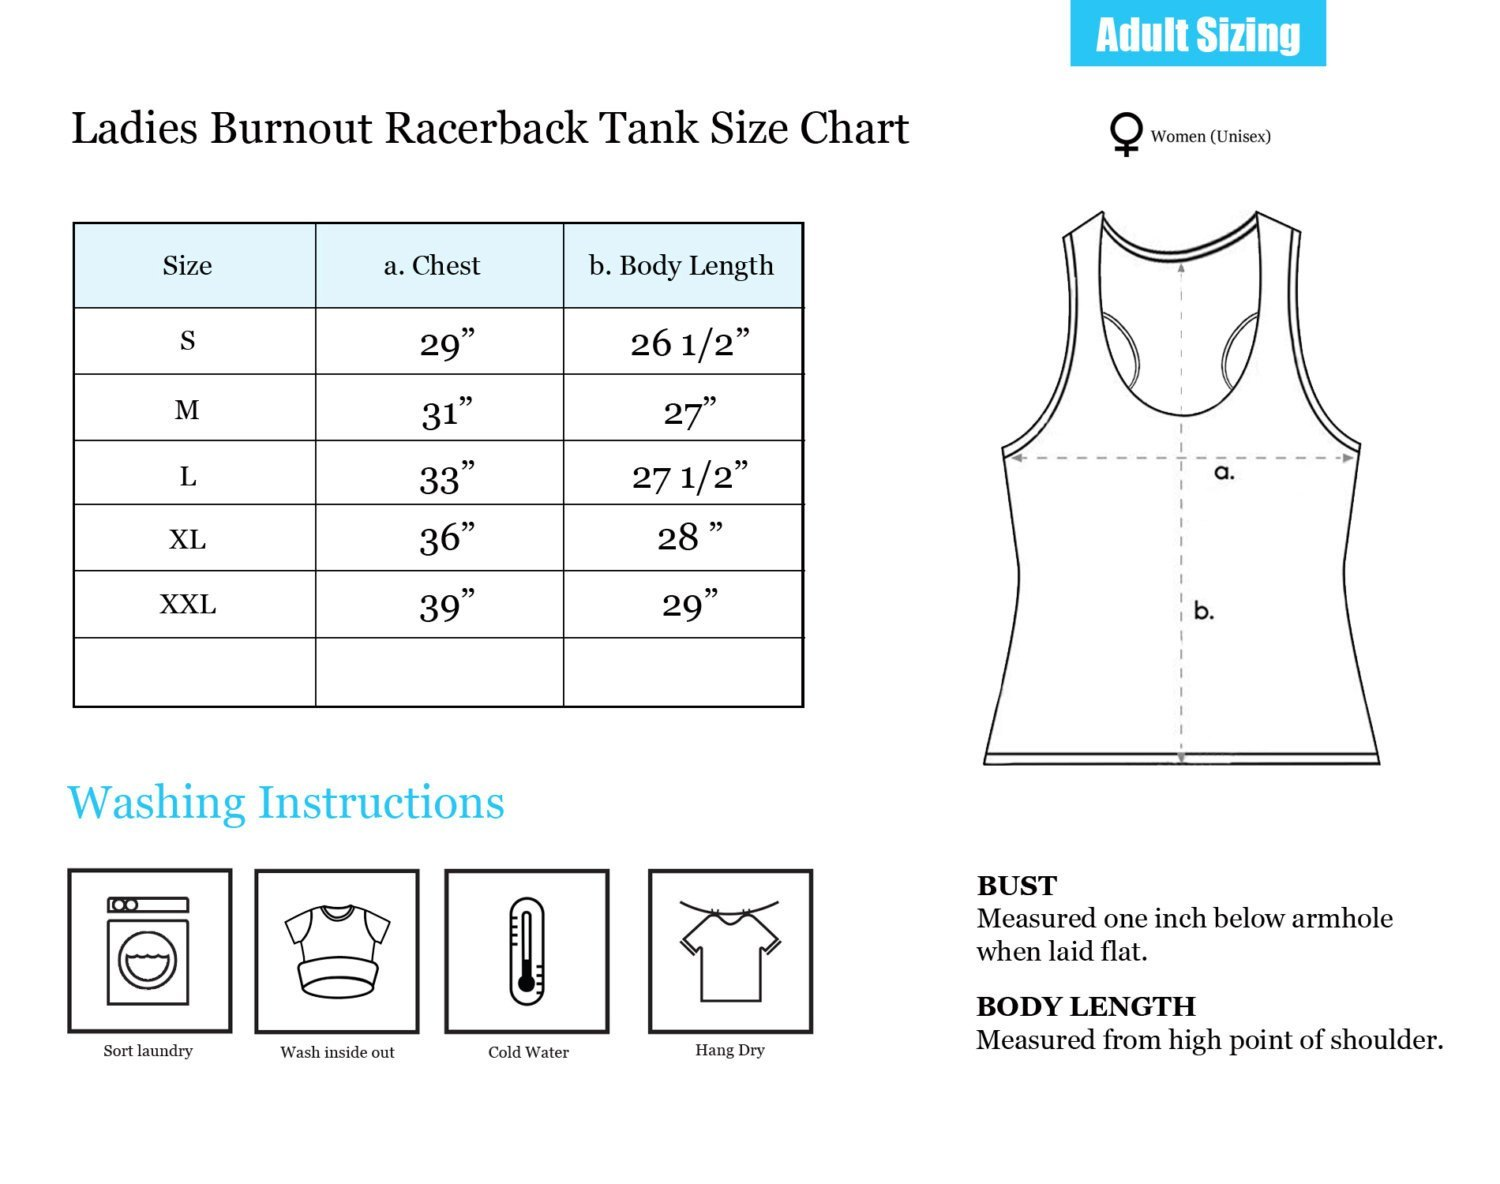 96137c4bcb0242 Six Pack in progress Burnout Racerback Tank - Workout tank Women s Exercise  Motivation for the Gym